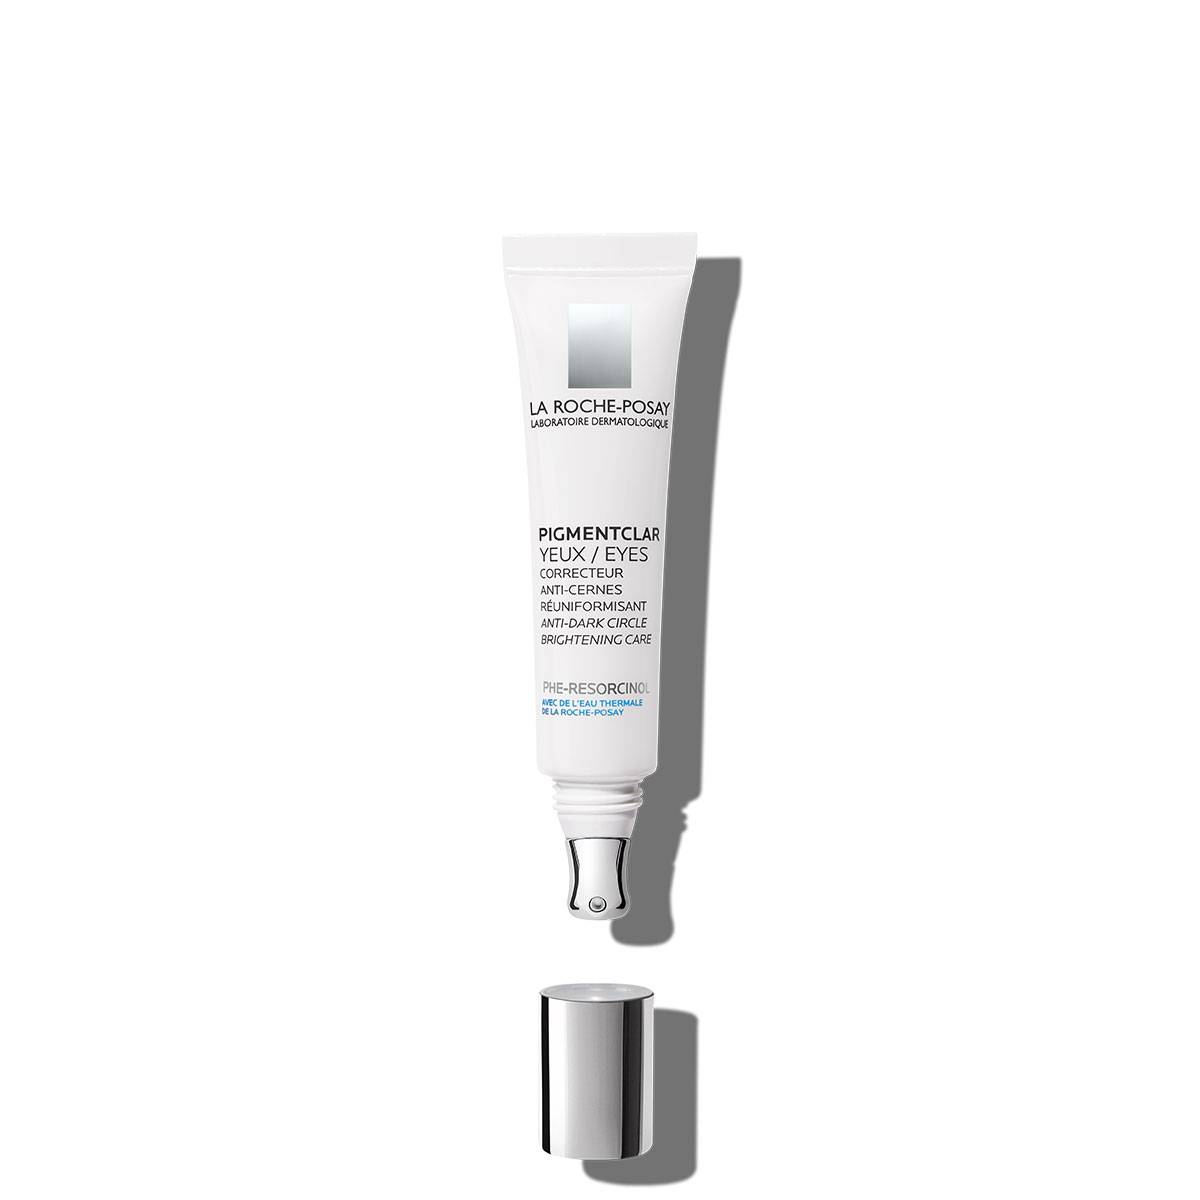 La Roche Posay ProductPage Anti Aging Eye Cream Pigmentclar Anti Dark